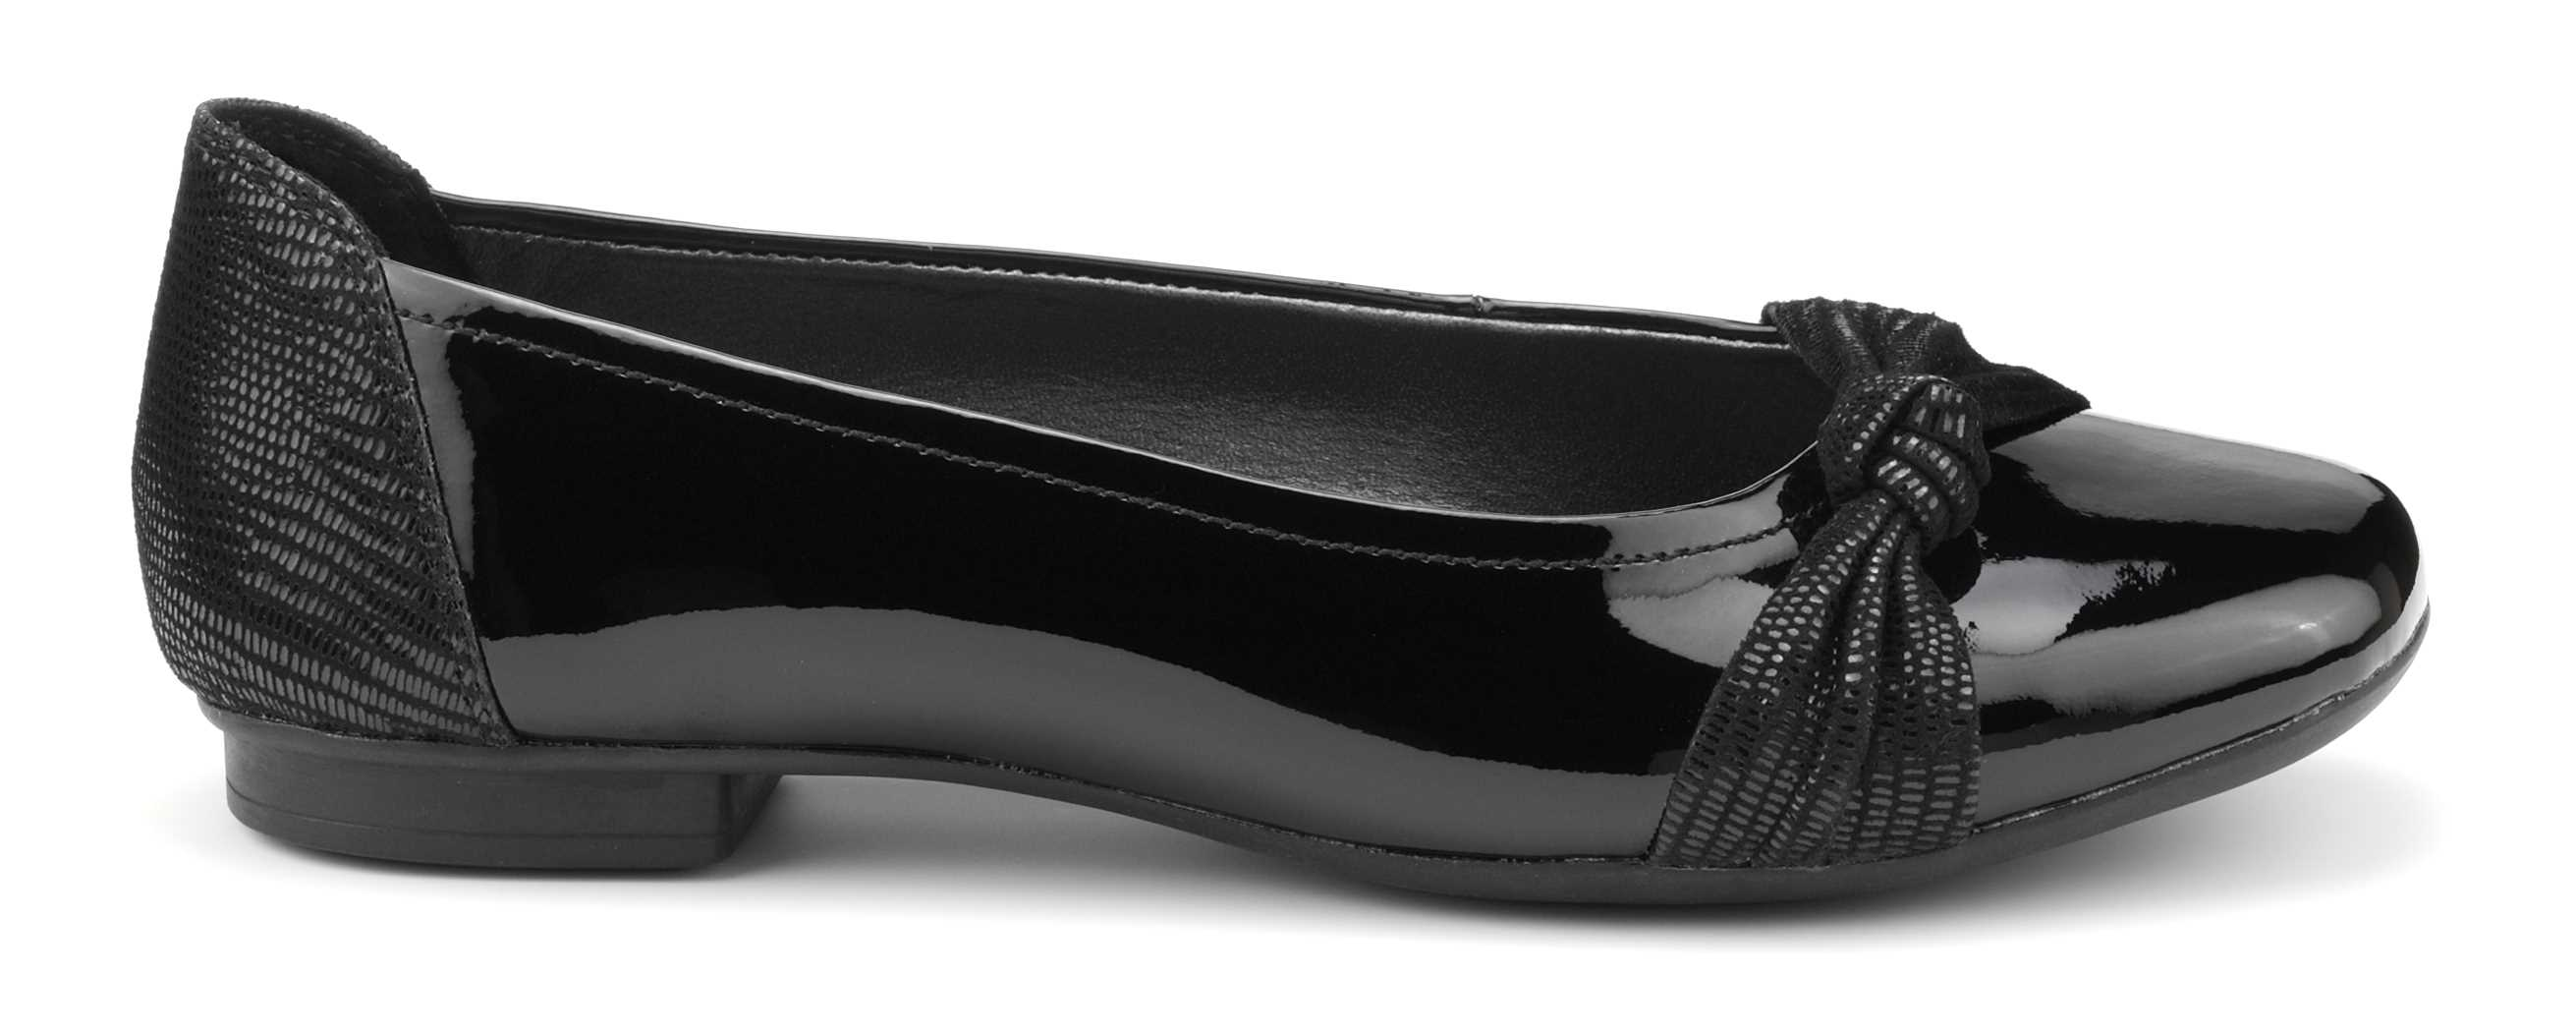 Women's black patent shoe Sylvie